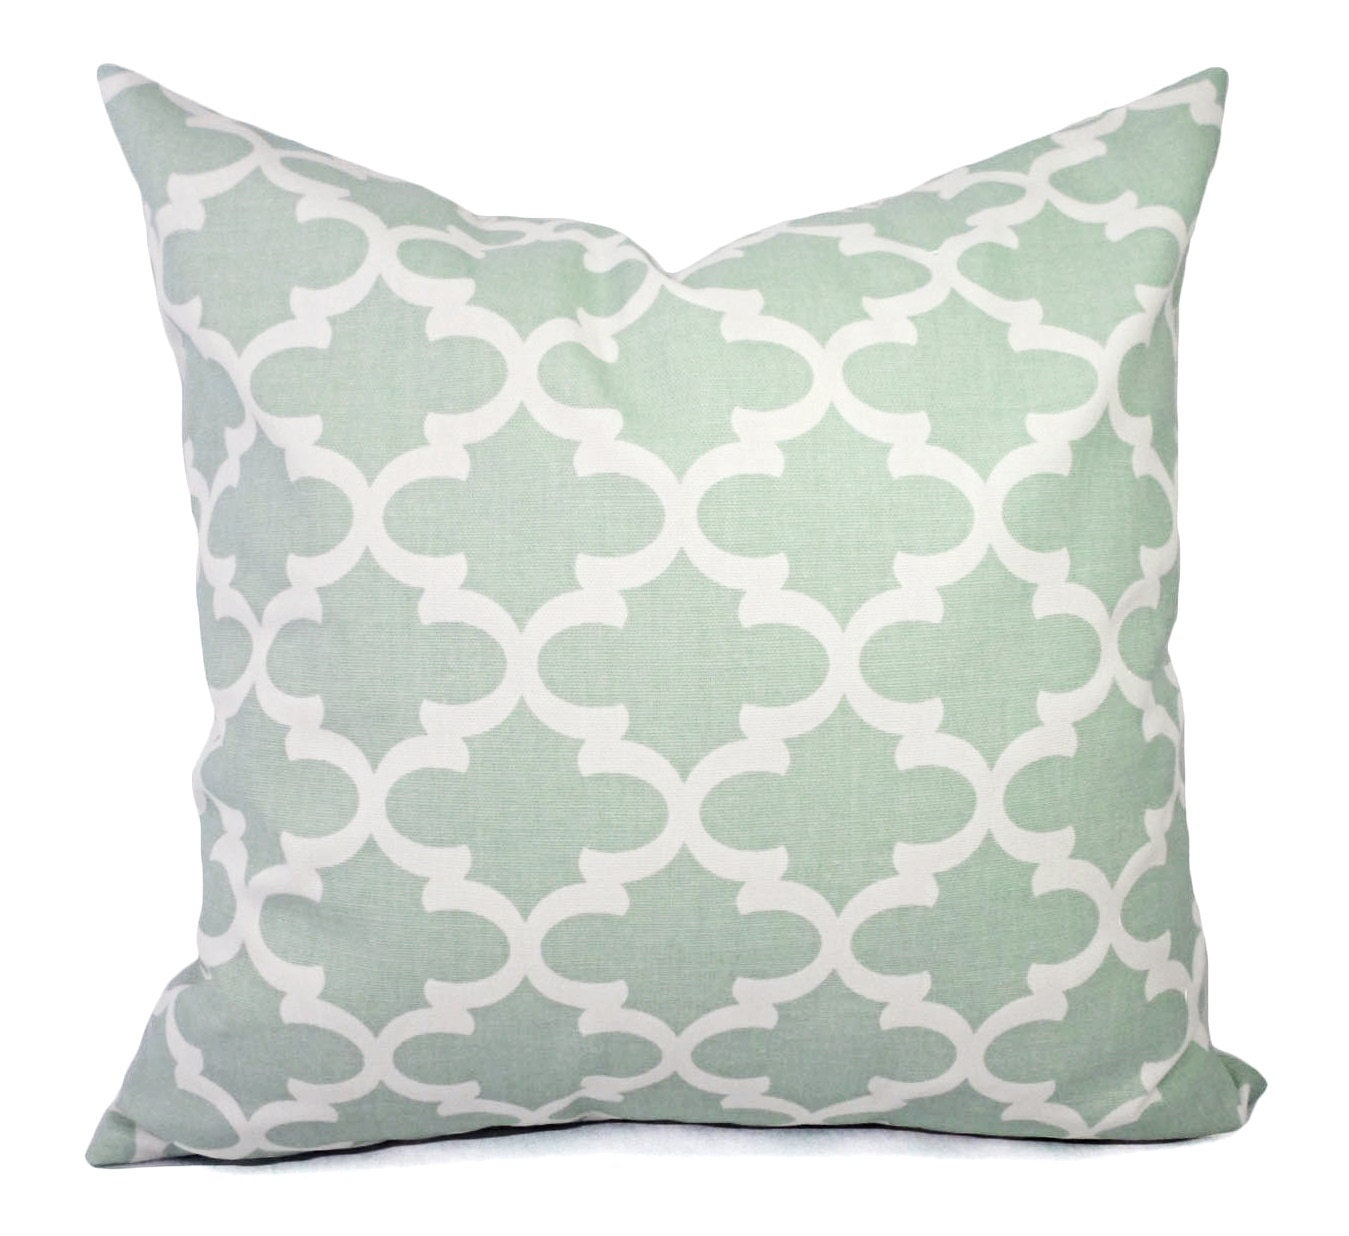 Soft Decorative Throw Pillows : Two Soft Green Decorative Pillow Covers Two Green Throw